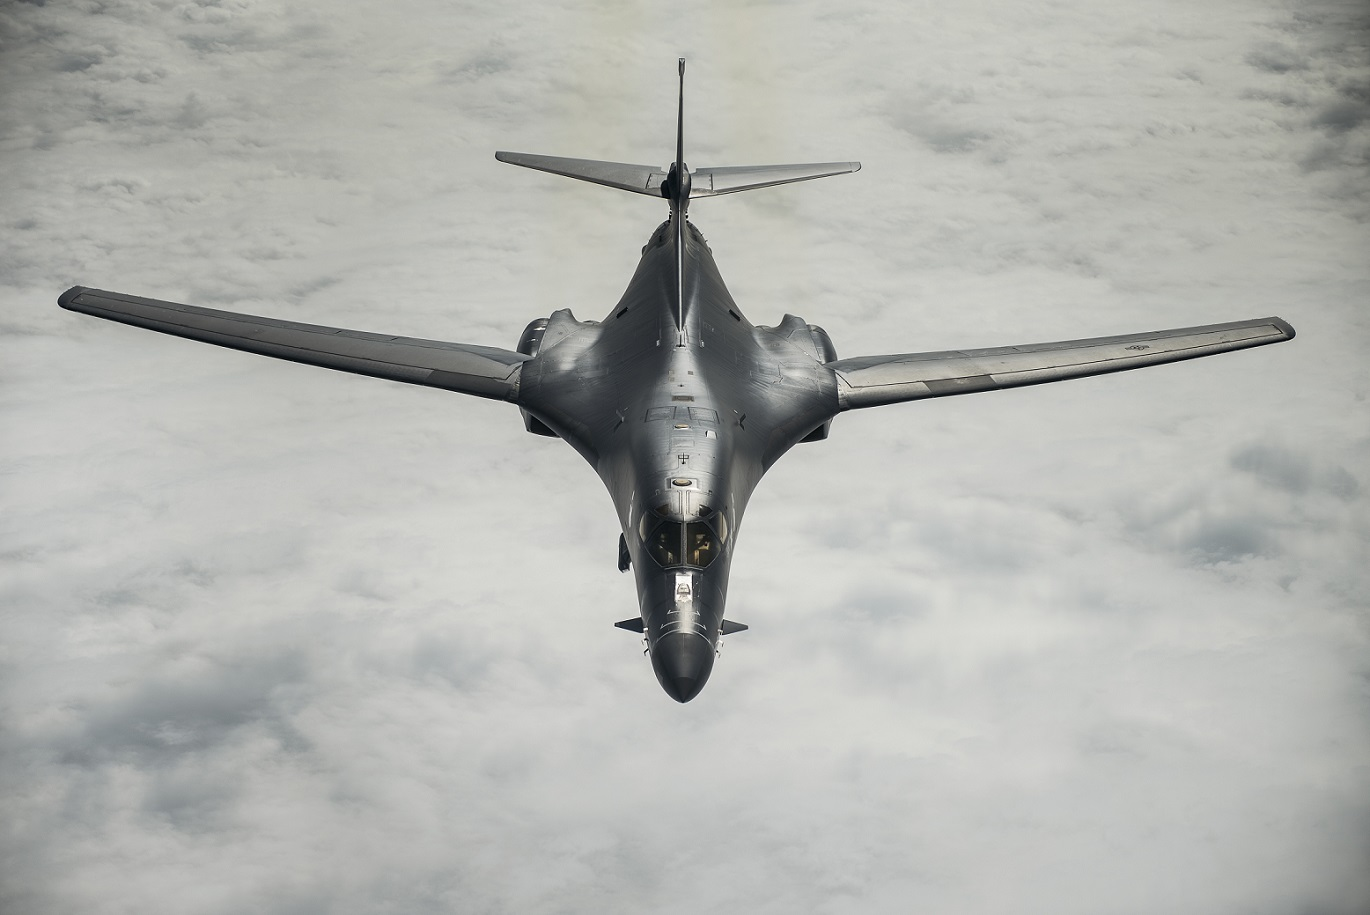 35 years of lethality: U.S. Air Force celebrates B-1's history